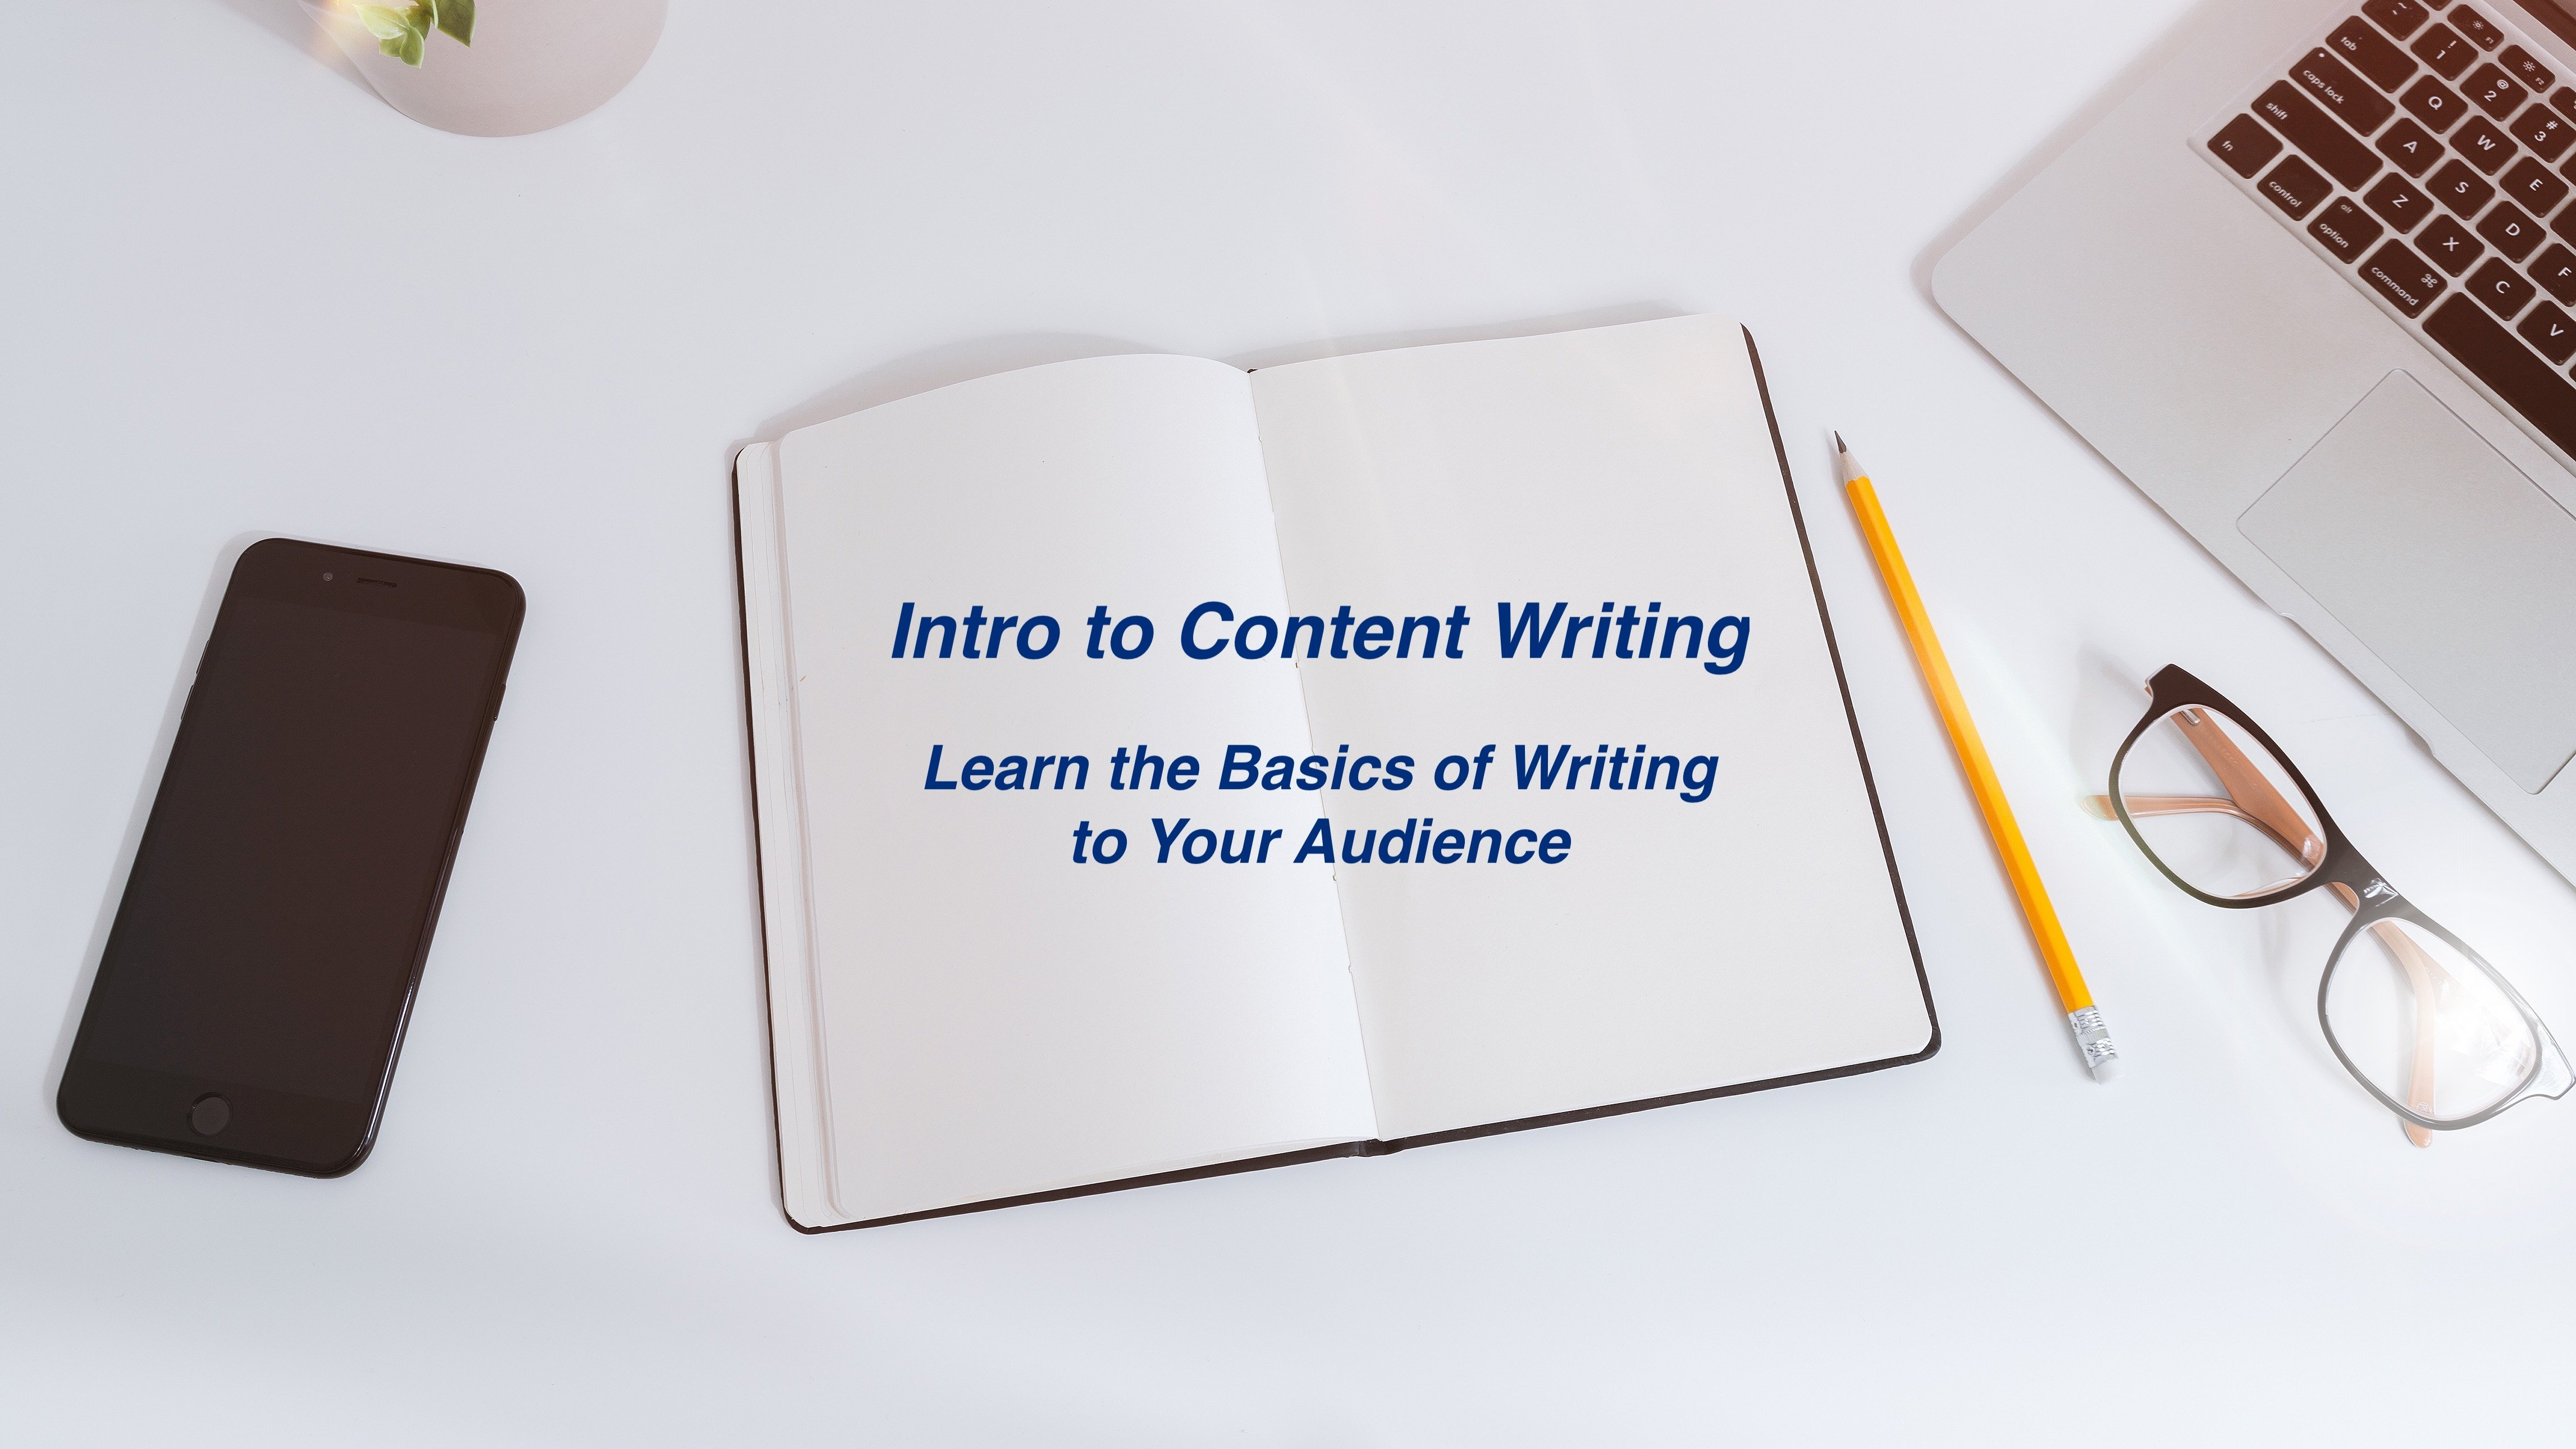 Intro to Content Writing: Learn the Basics of Writing to Your Audience